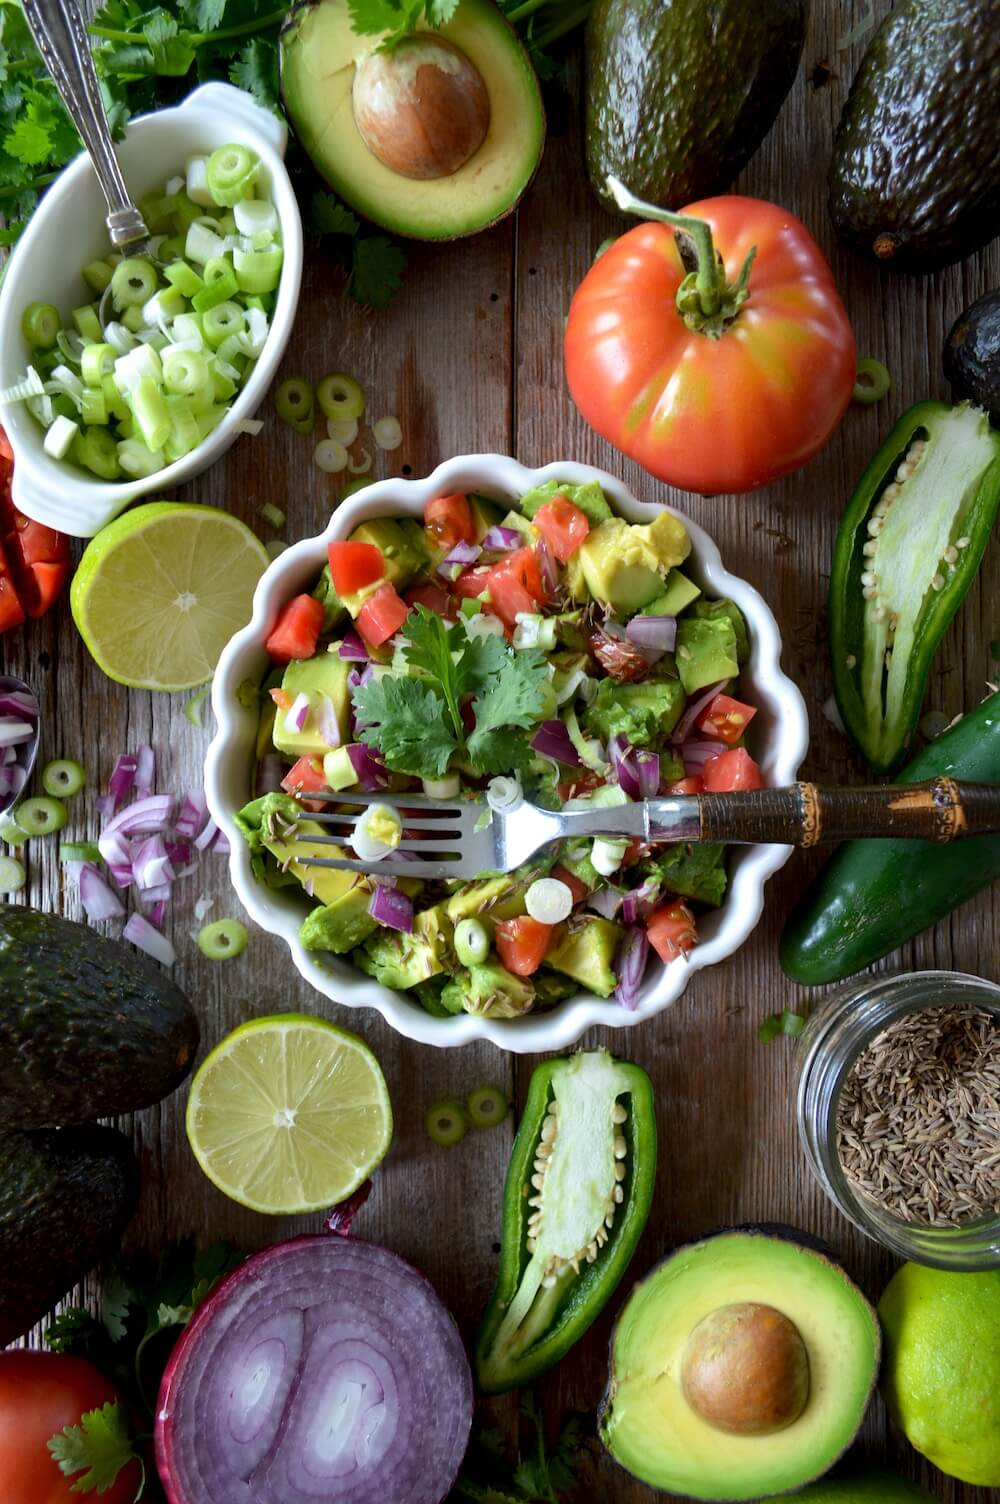 Eat an anti-inflammatory diet to reduce inflammation